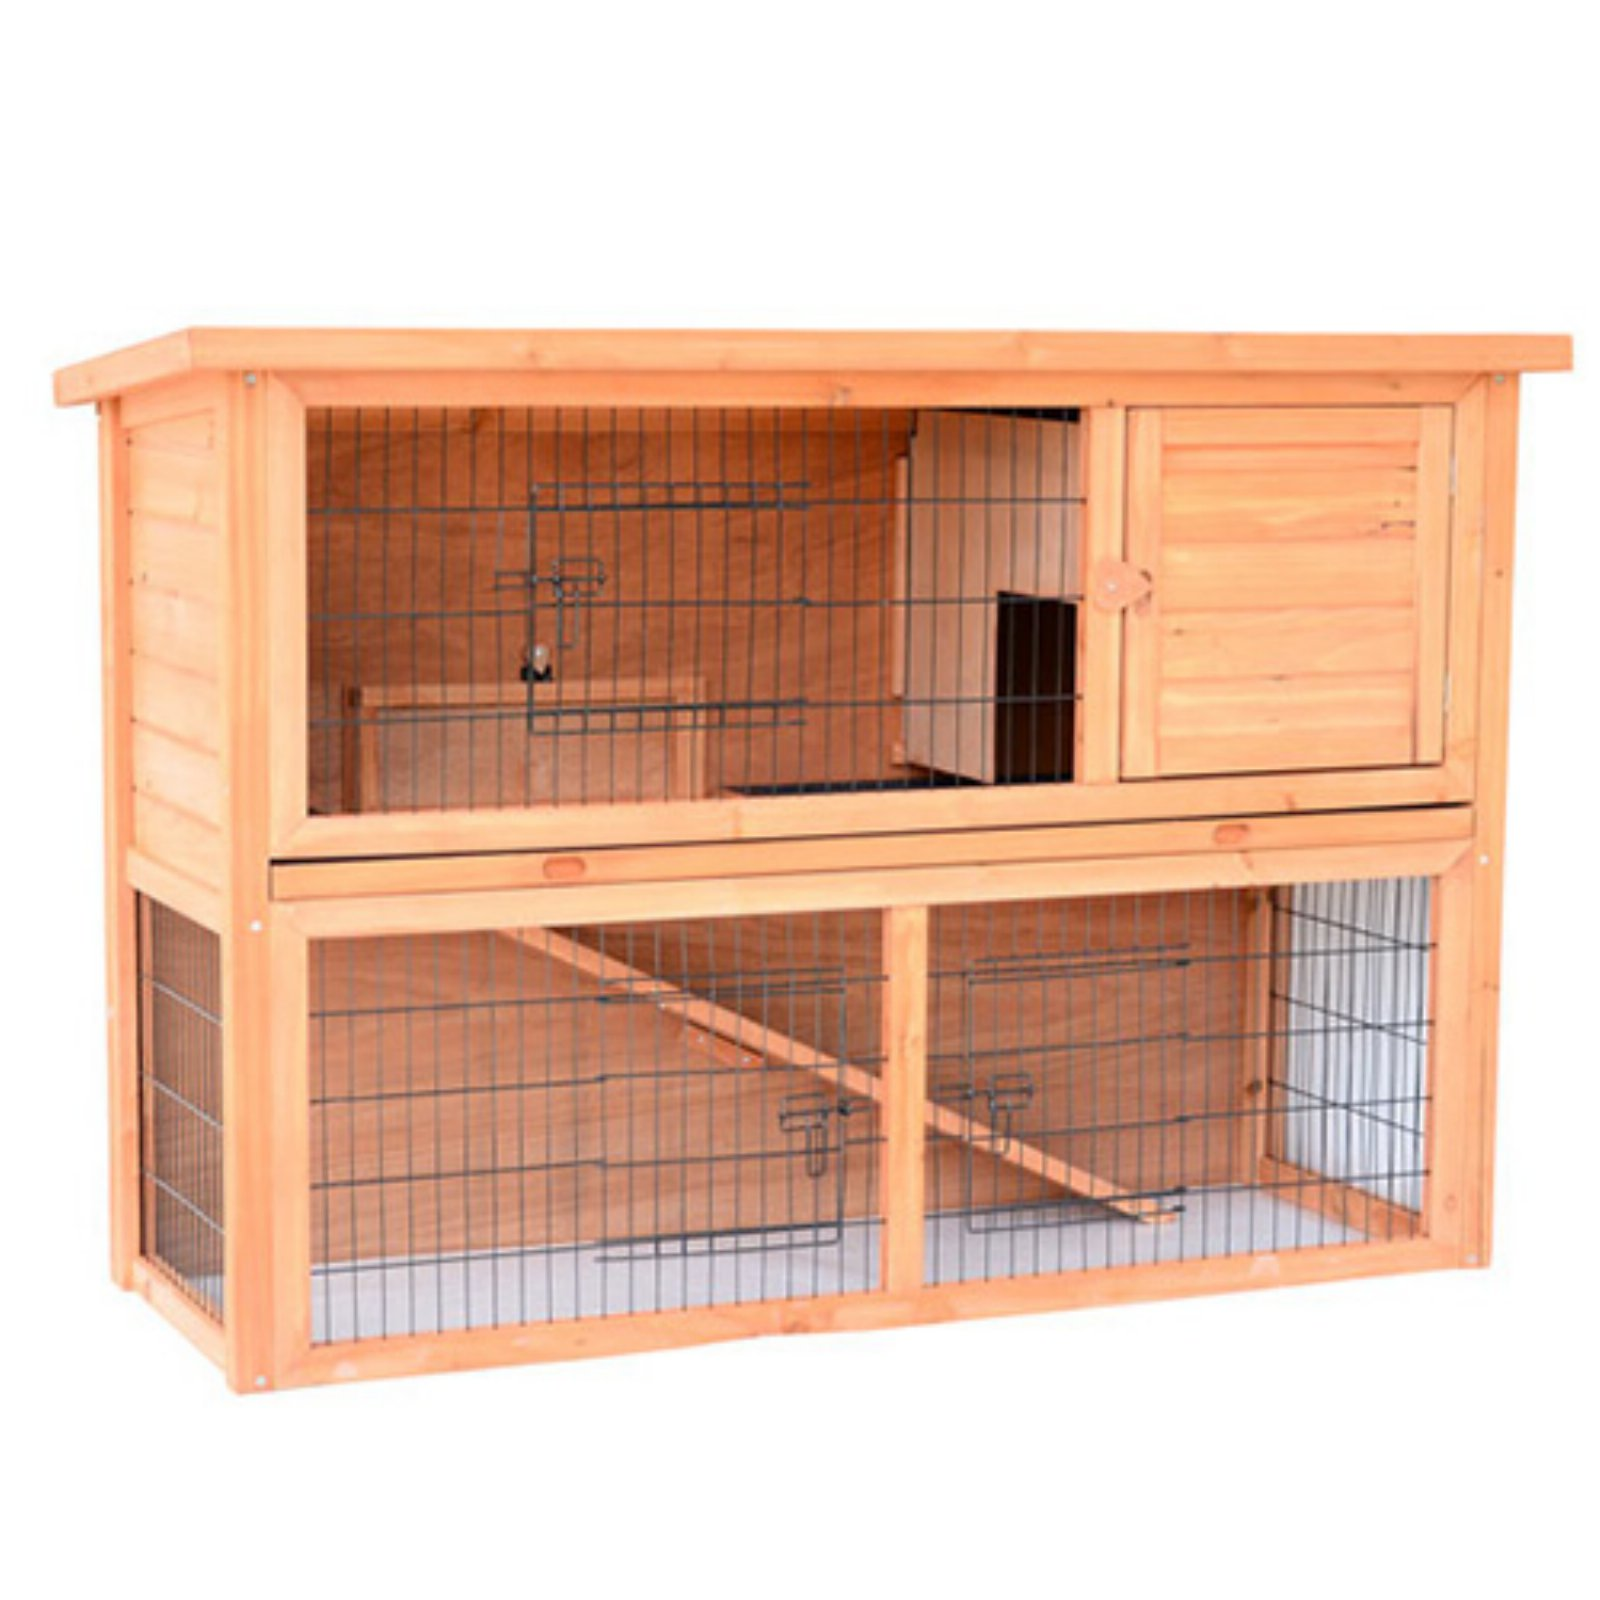 Pawhut 54 in. Wooden Rabbit Hutch/Bunny House with Outdoor Run